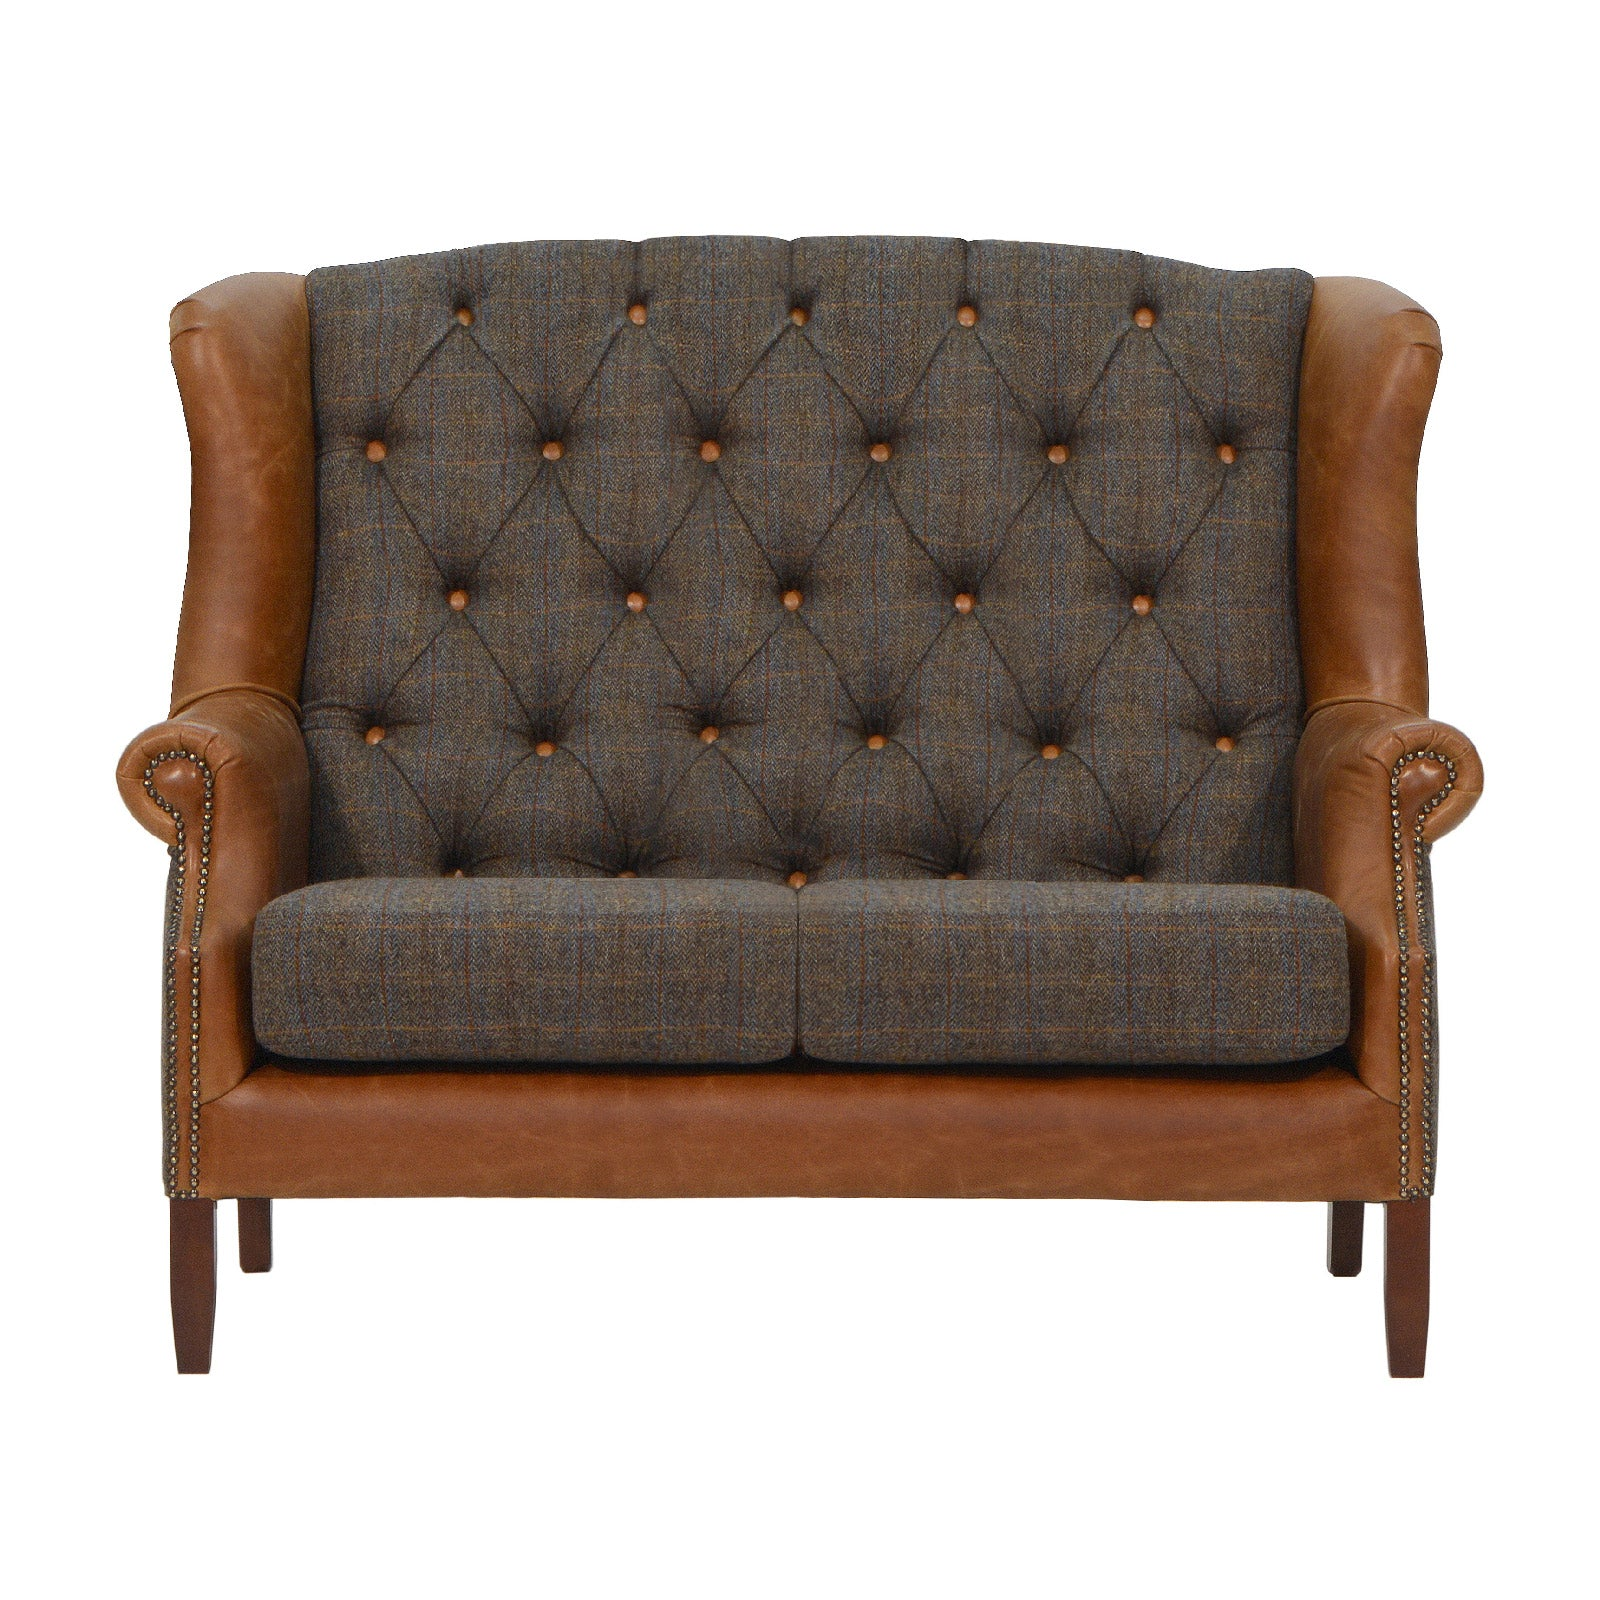 Wing 2 seater sofa Harris Tweed and Leather REDUCED TO CLEAR STOCK-harris tweed accent chairs-Against The Grain Furniture-Against The Grain Furniture